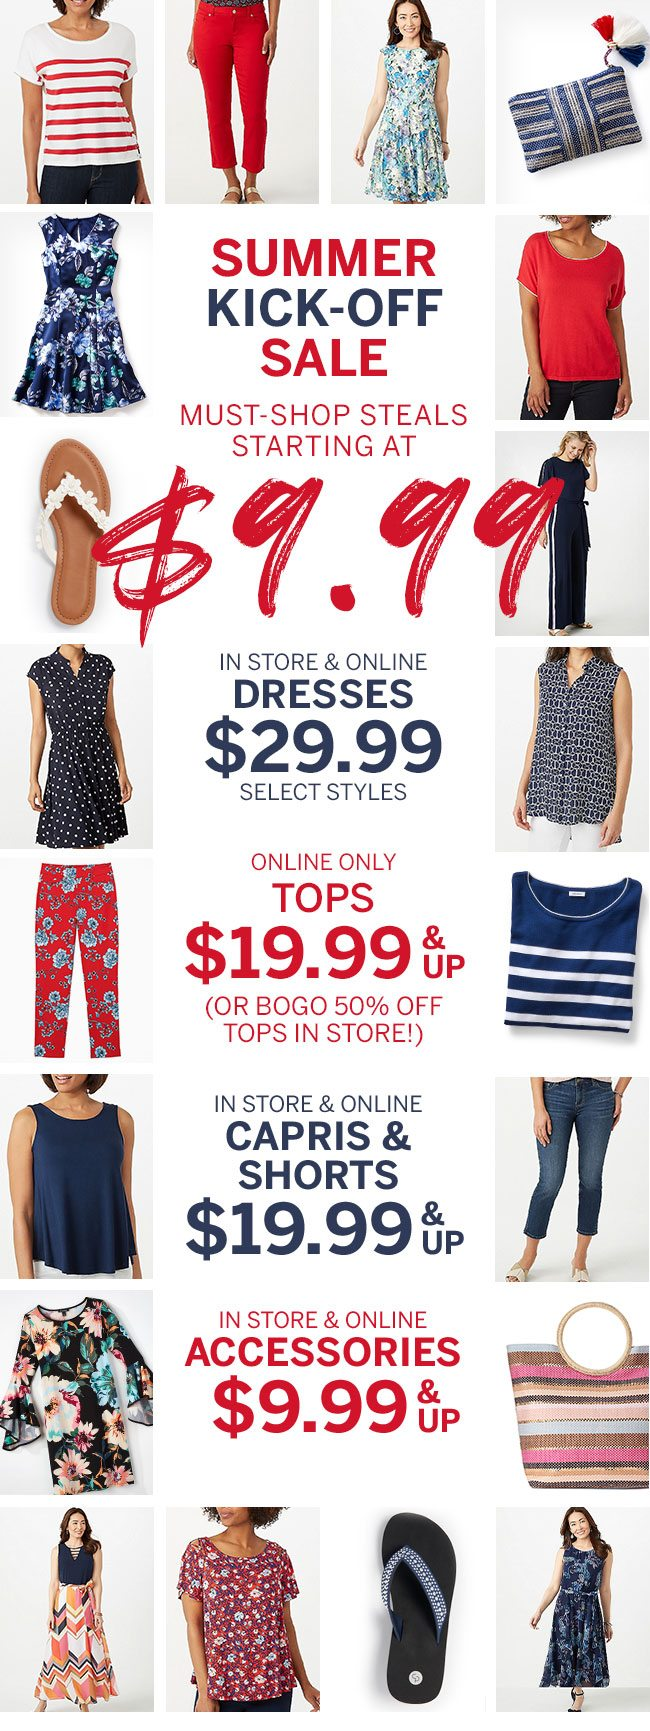 Summer kick-off sale Must-shop steals starting at $9.99 In store & online Dresses $29.99 select styles. online only tops $19.99 and up or BOGO 50% off in store! In store & online Capri's and shorts $19.99 and up In store & online Accessories $9.99 and up.